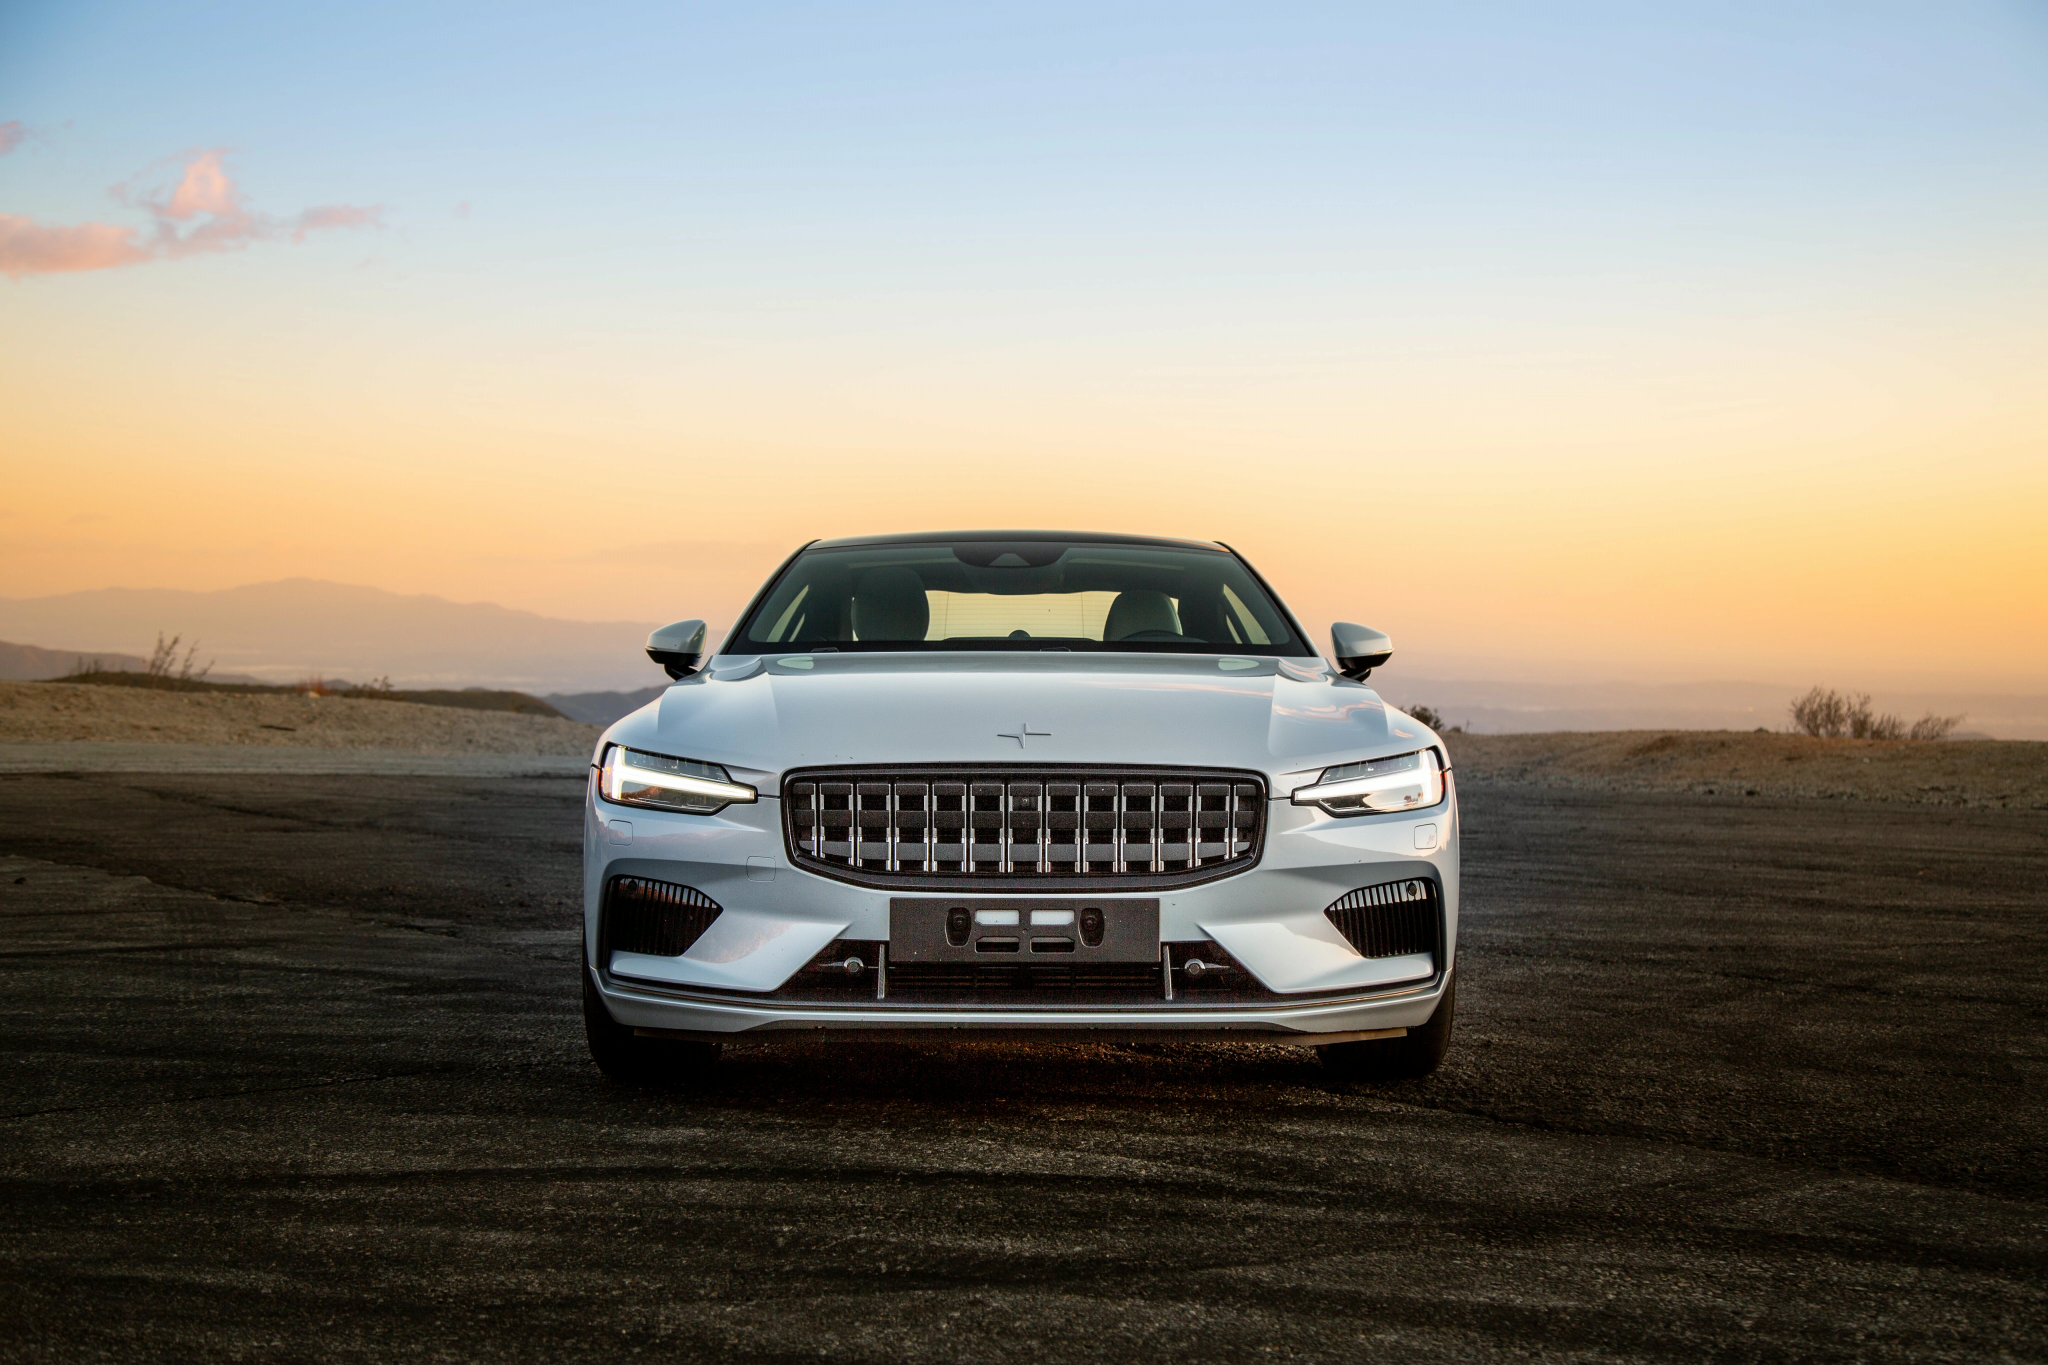 2020 Polestar 1: 7 Things We Like and 4 Things We Don't